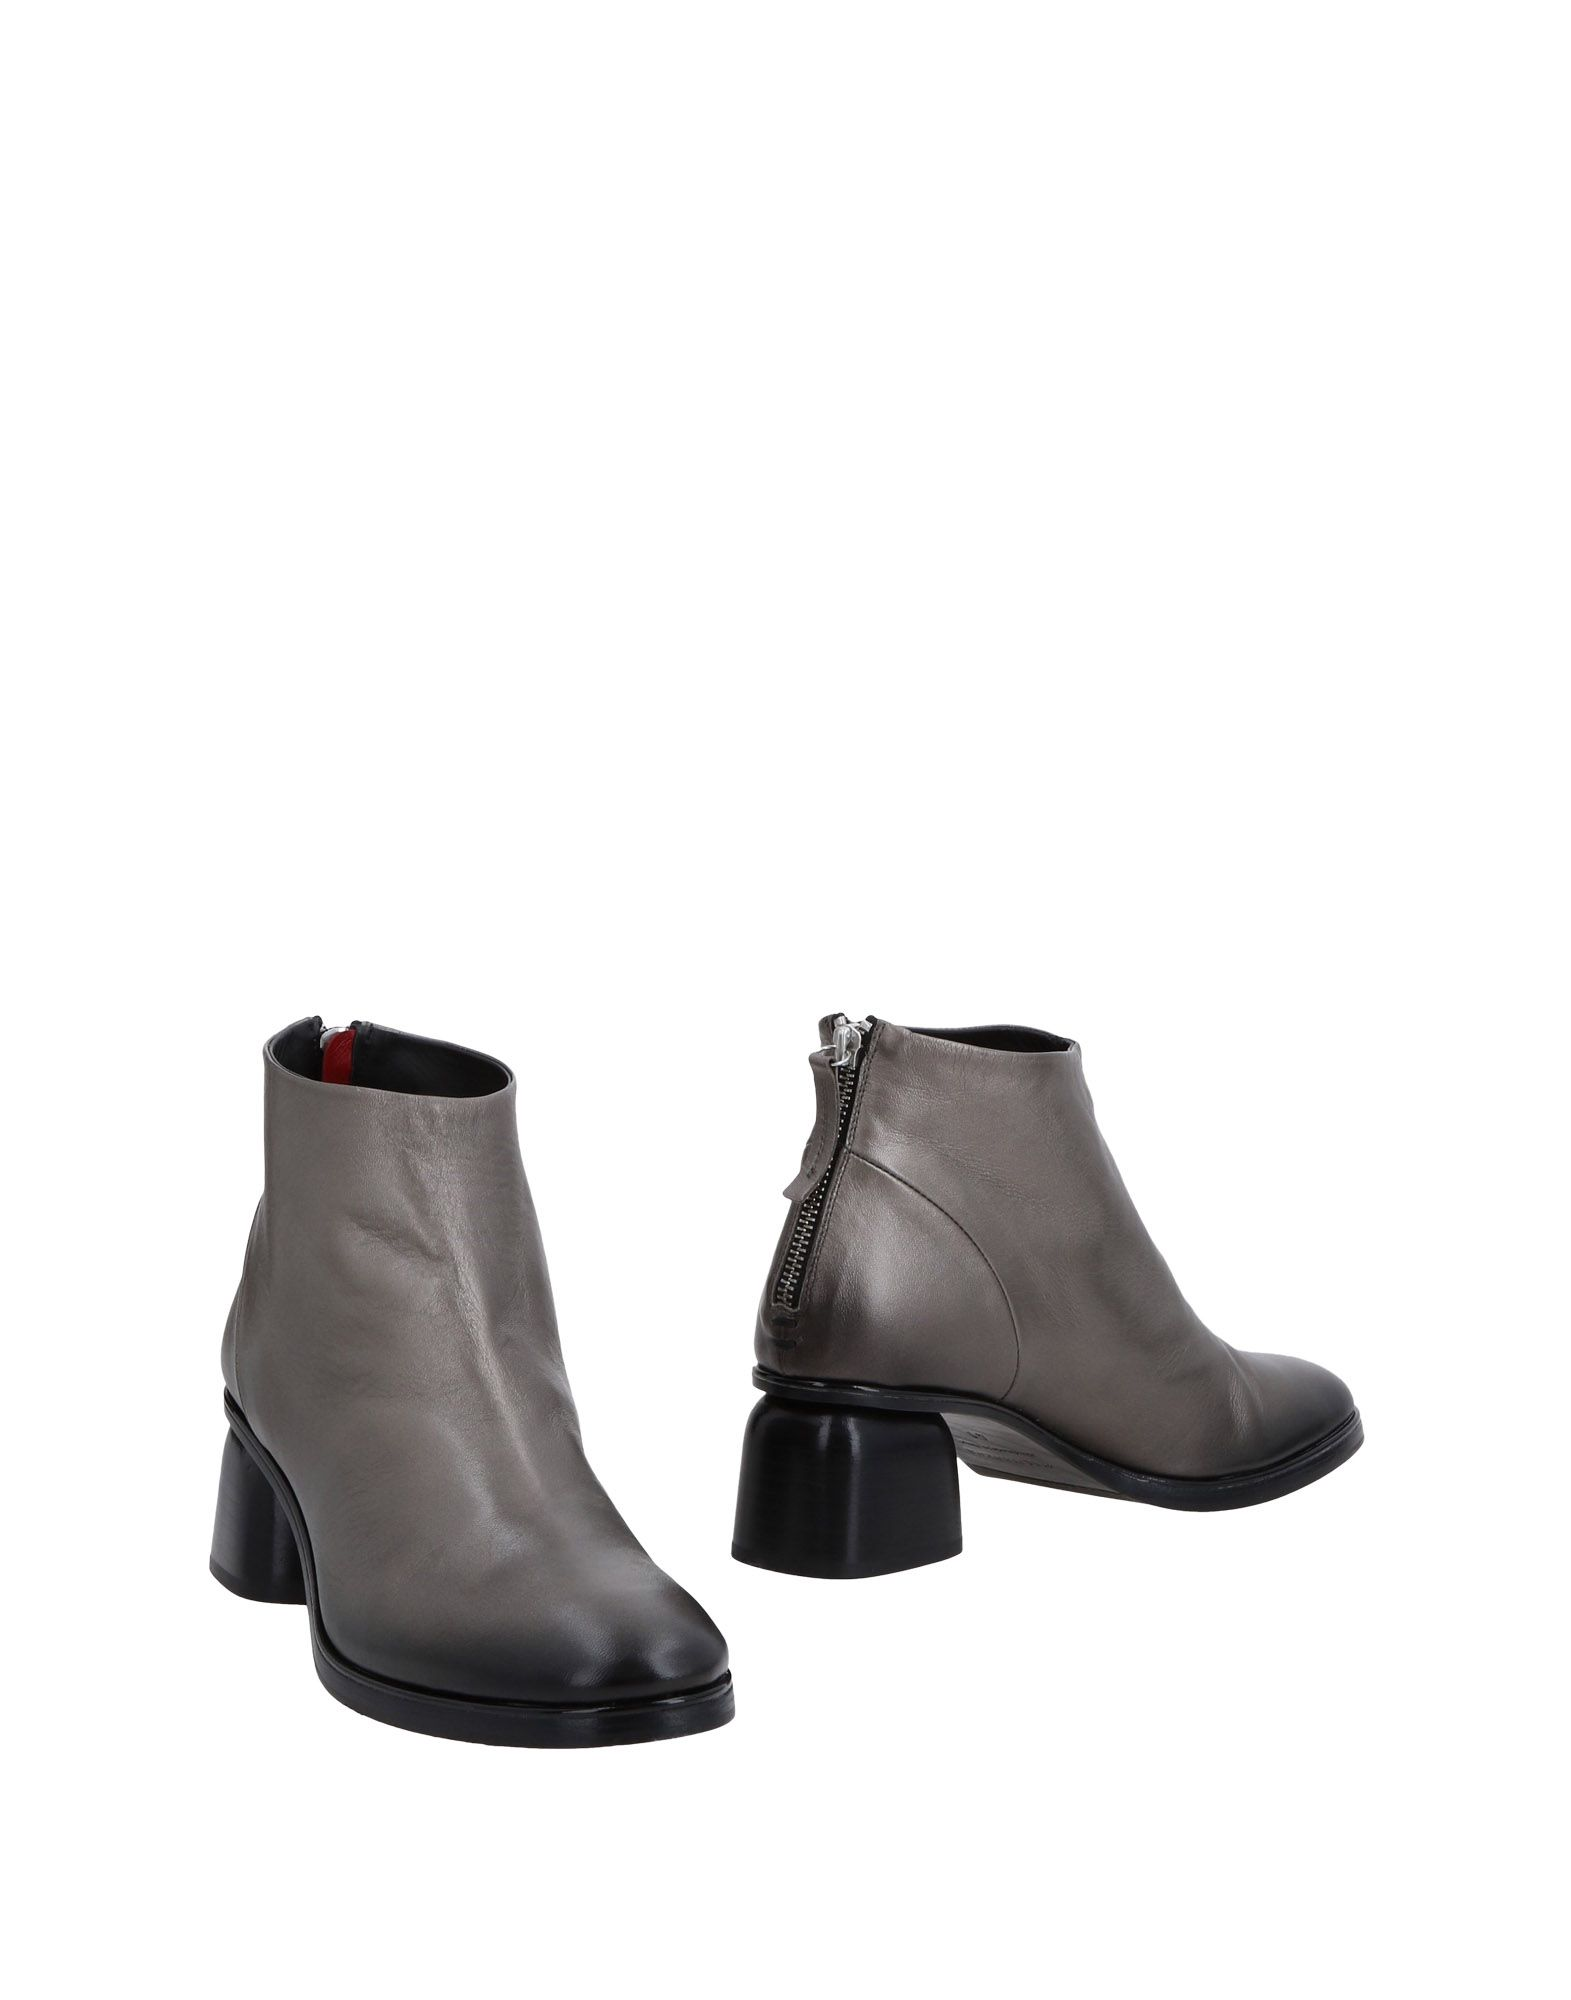 HALMANERA Ankle Boot in Lead